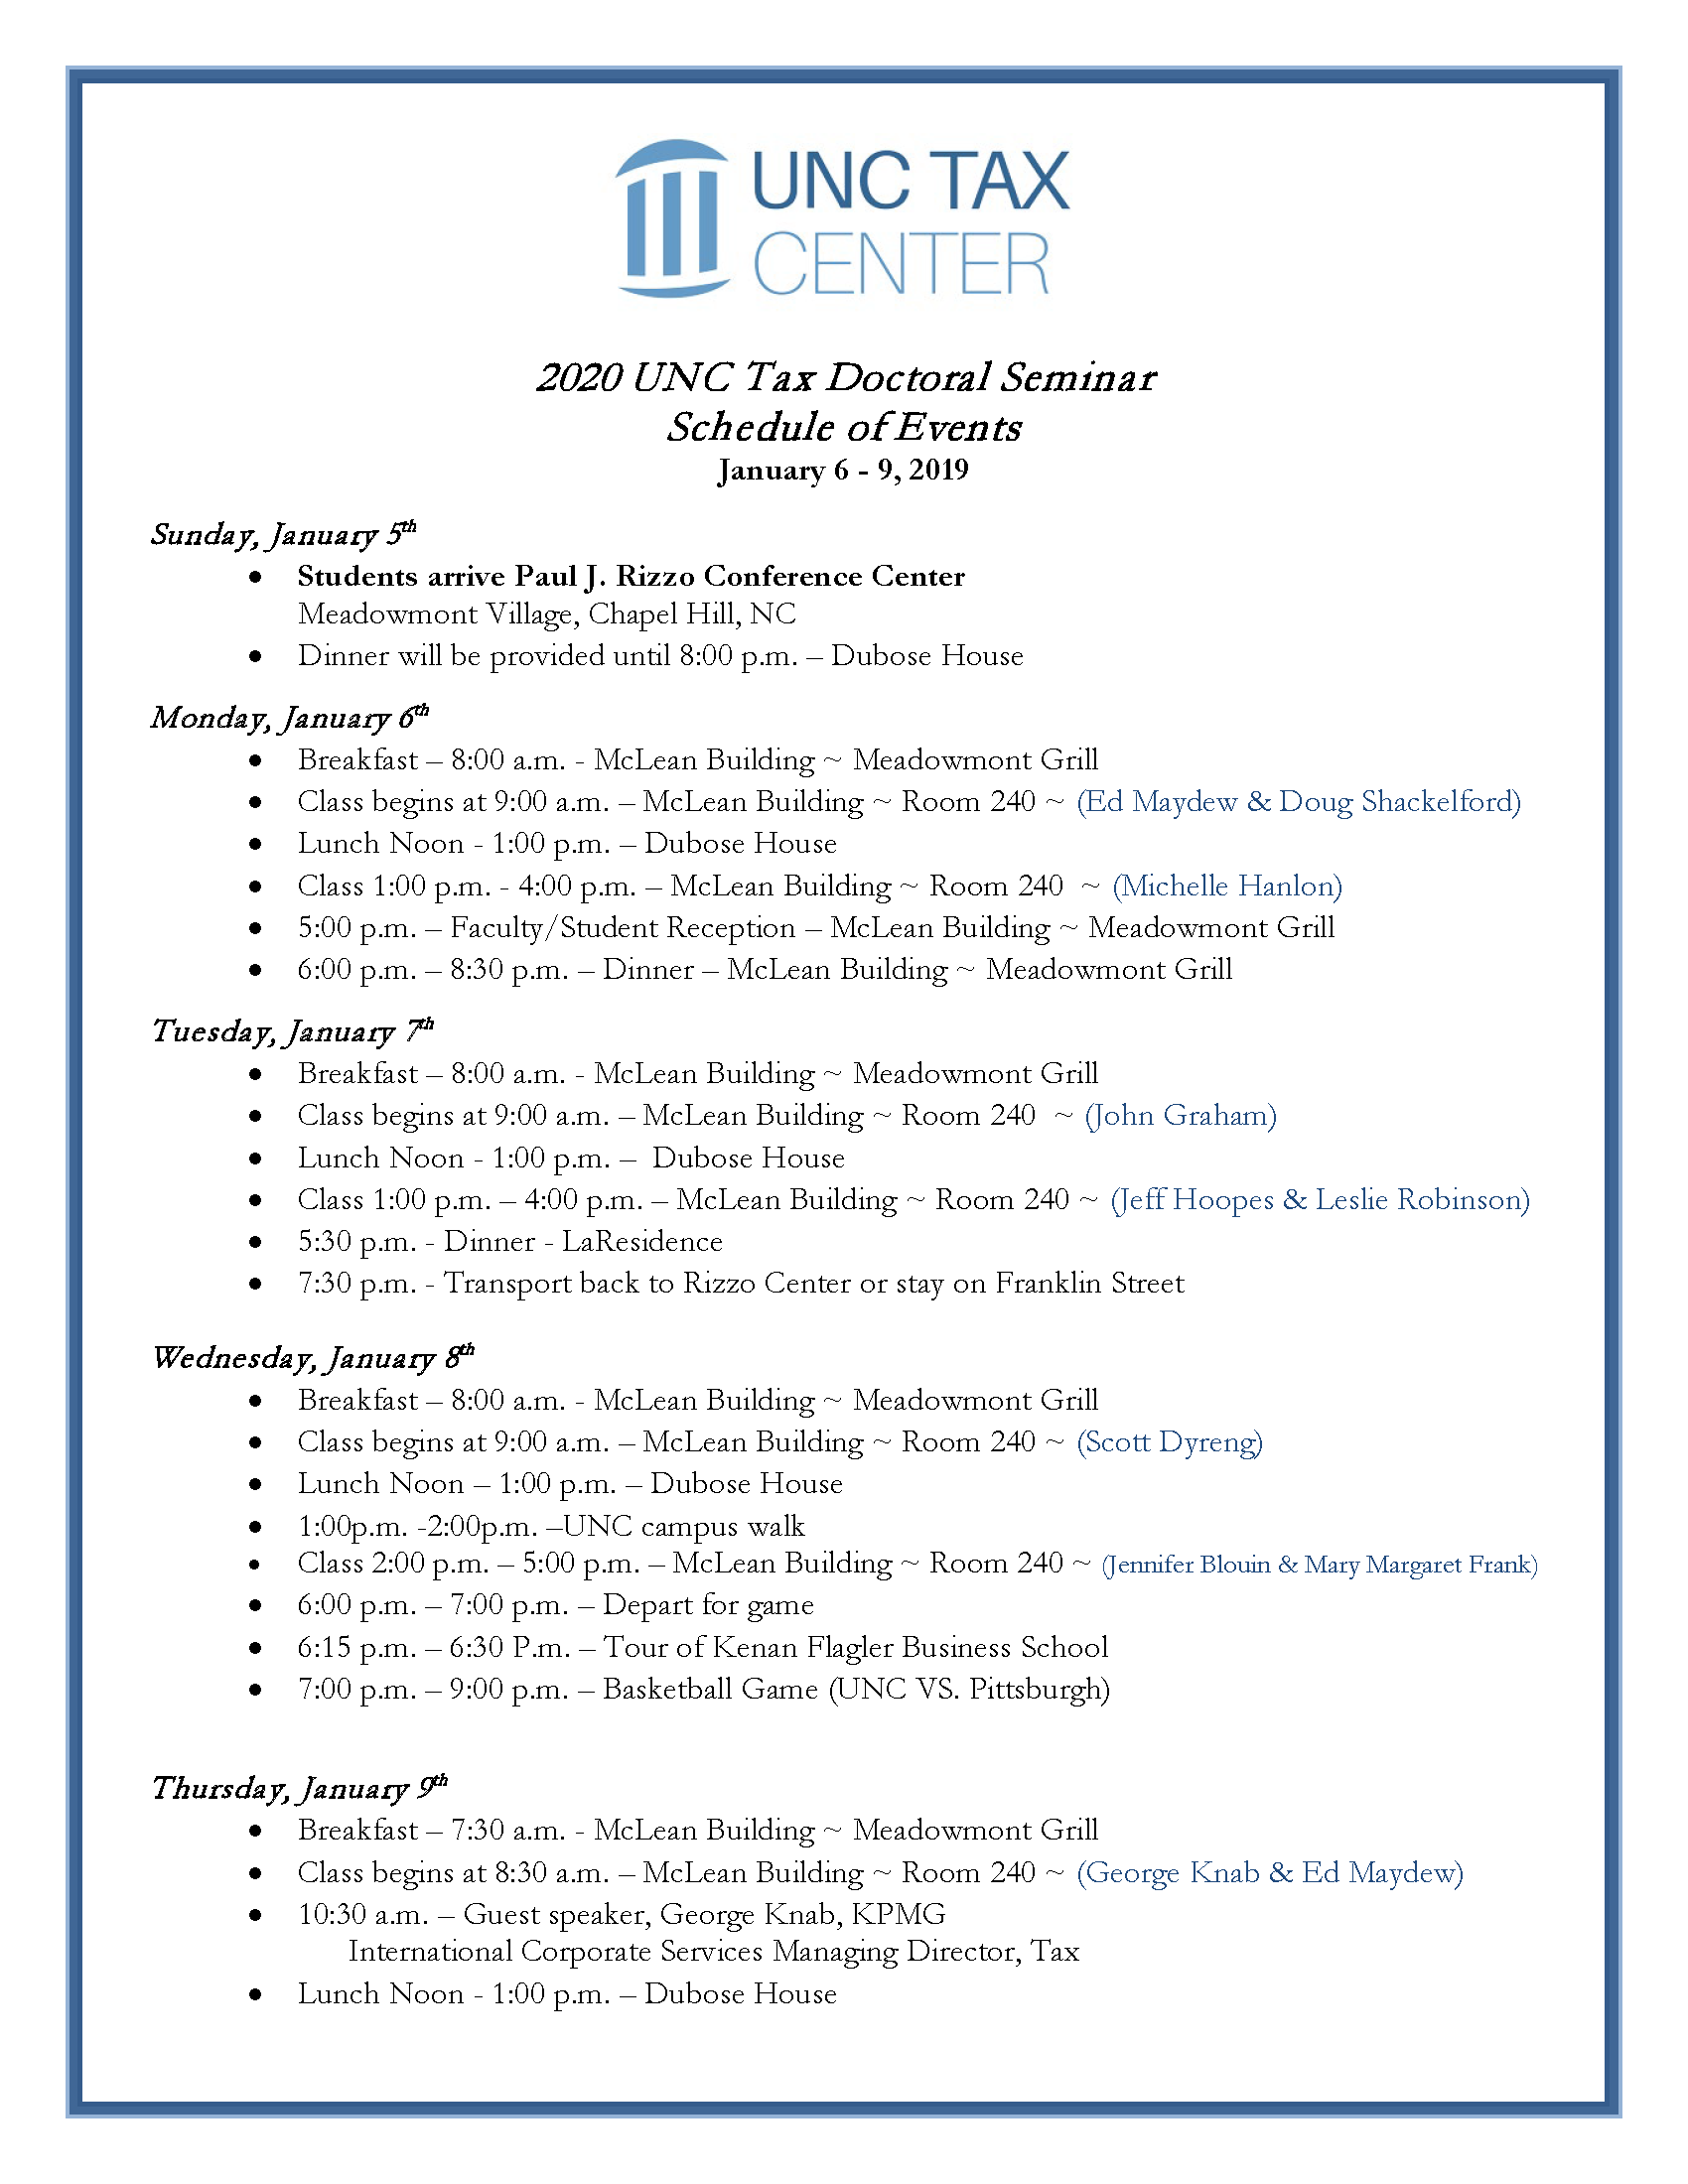 Tax Doctoral Seminar Schedule of Events